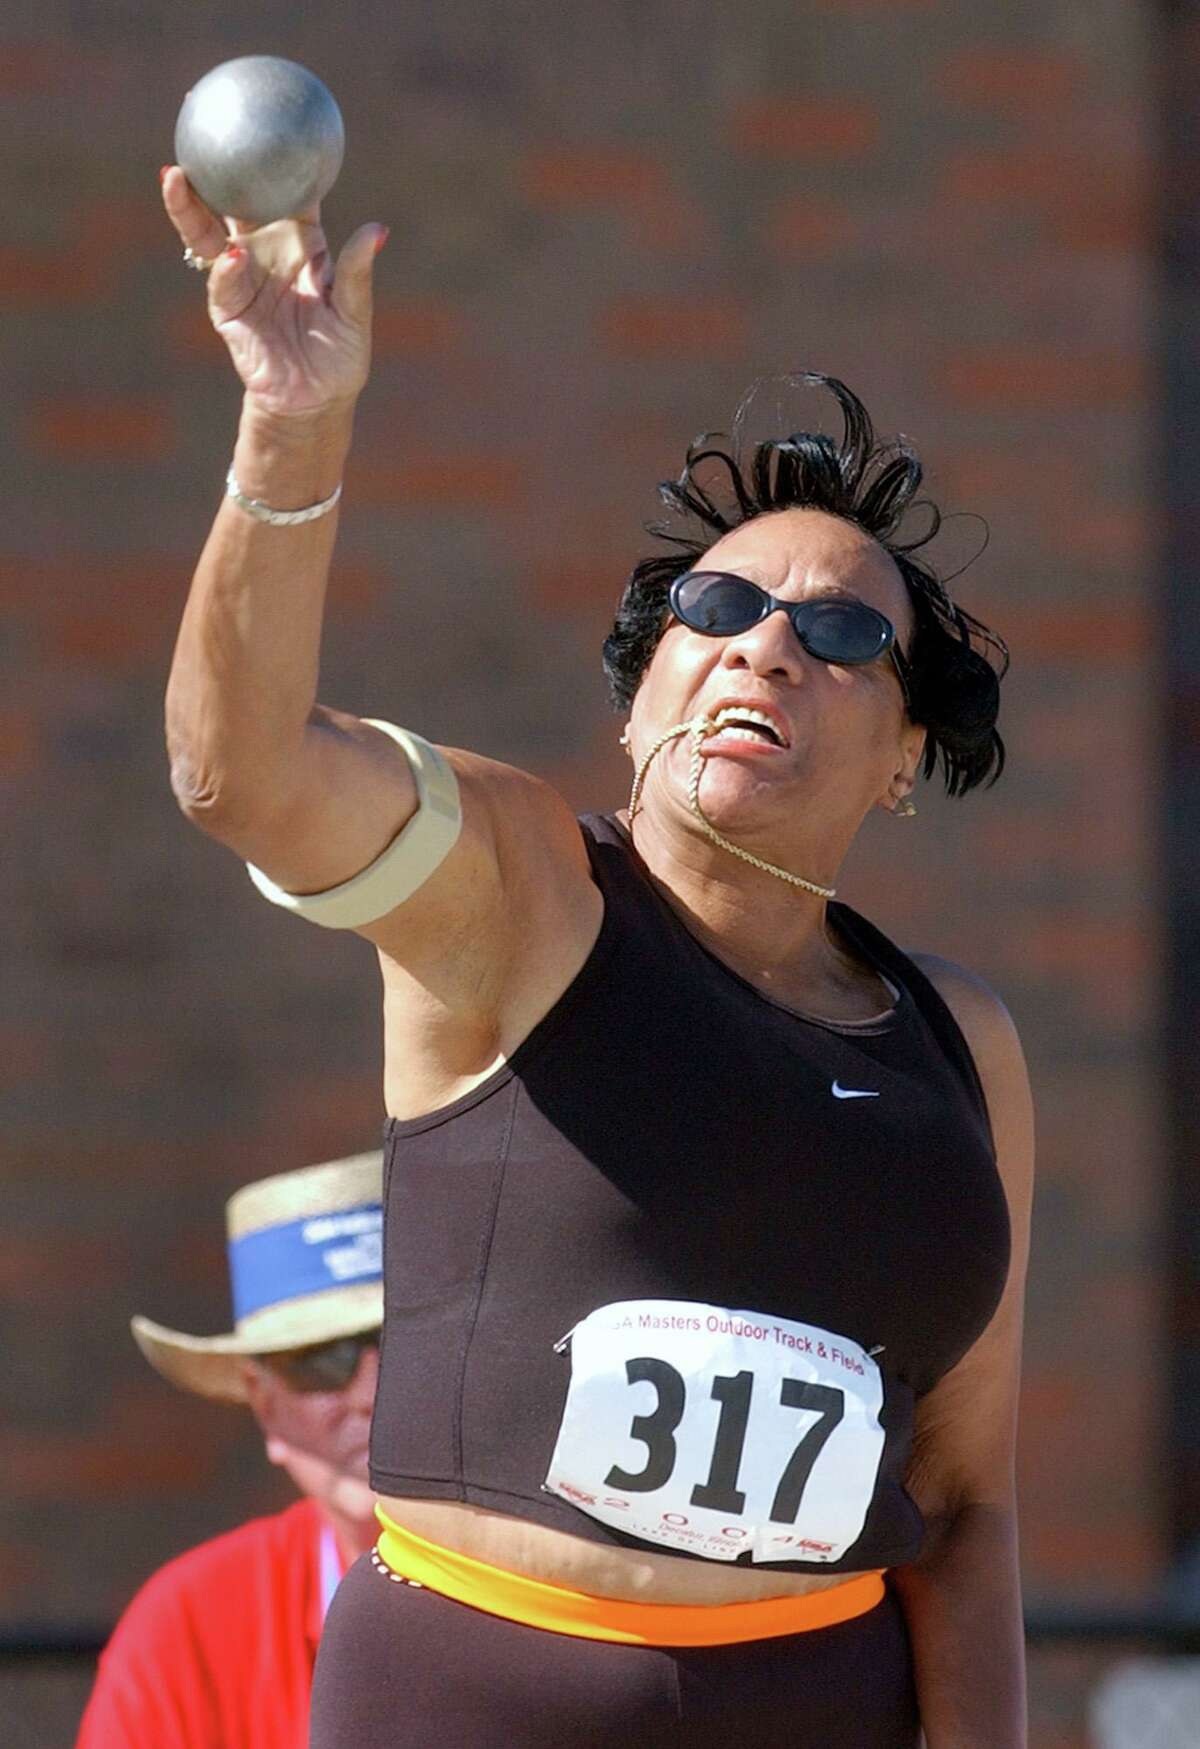 Mary Roman, of Norwalk, Conn., makes a shot put attempt Thursday, Aug. 5, 2004, at the USA Masters Outdoor Track & Field competition in Decatur, Ill.